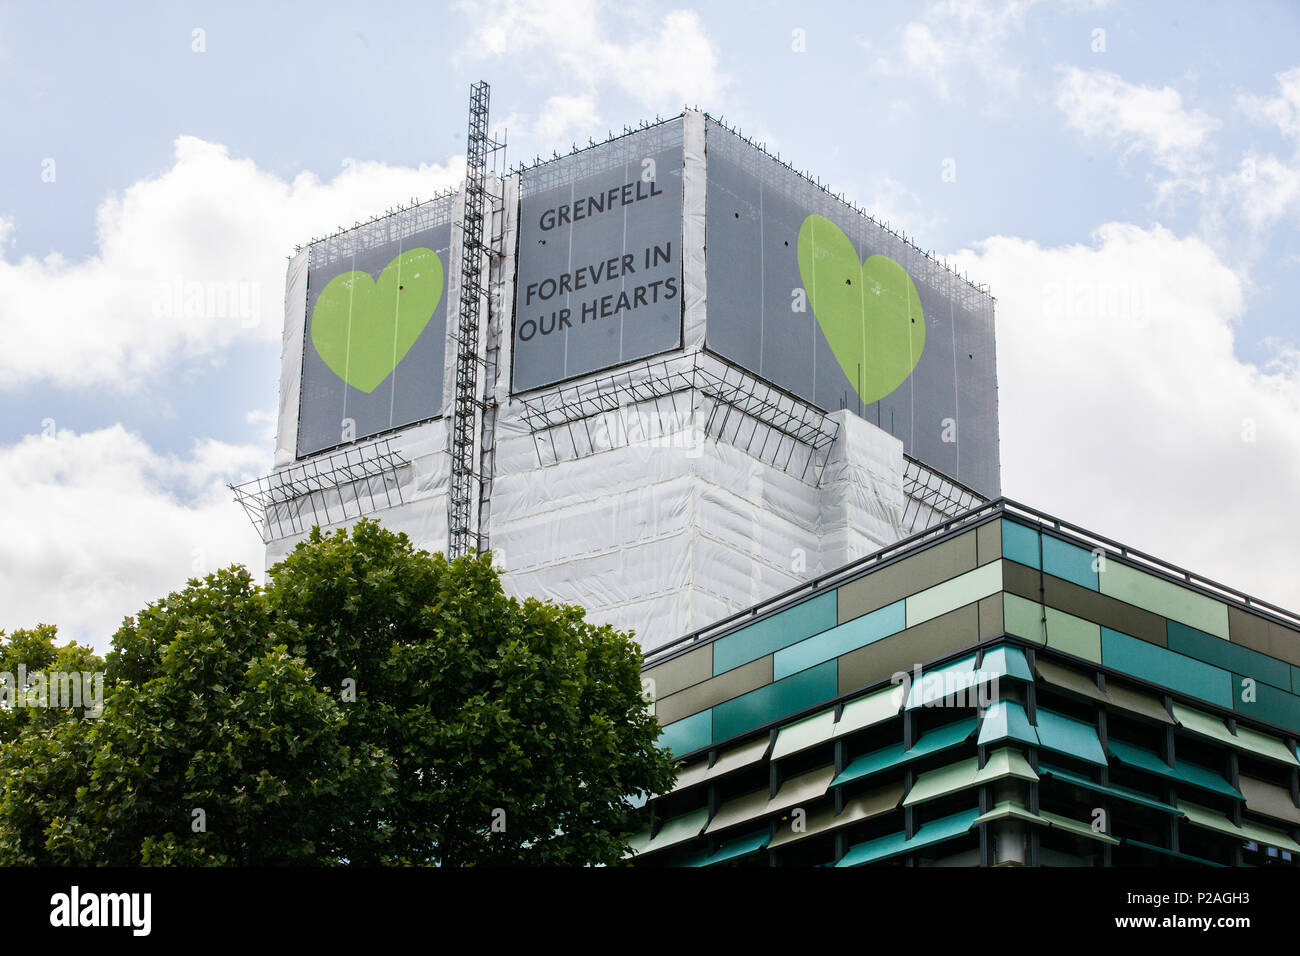 London, UK. 14th June, 2018. Green Grenfell hearts are now positioned at the top of the Grenfell Tower on all sides. Credit: Mark Kerrison/Alamy Live News - Stock Image